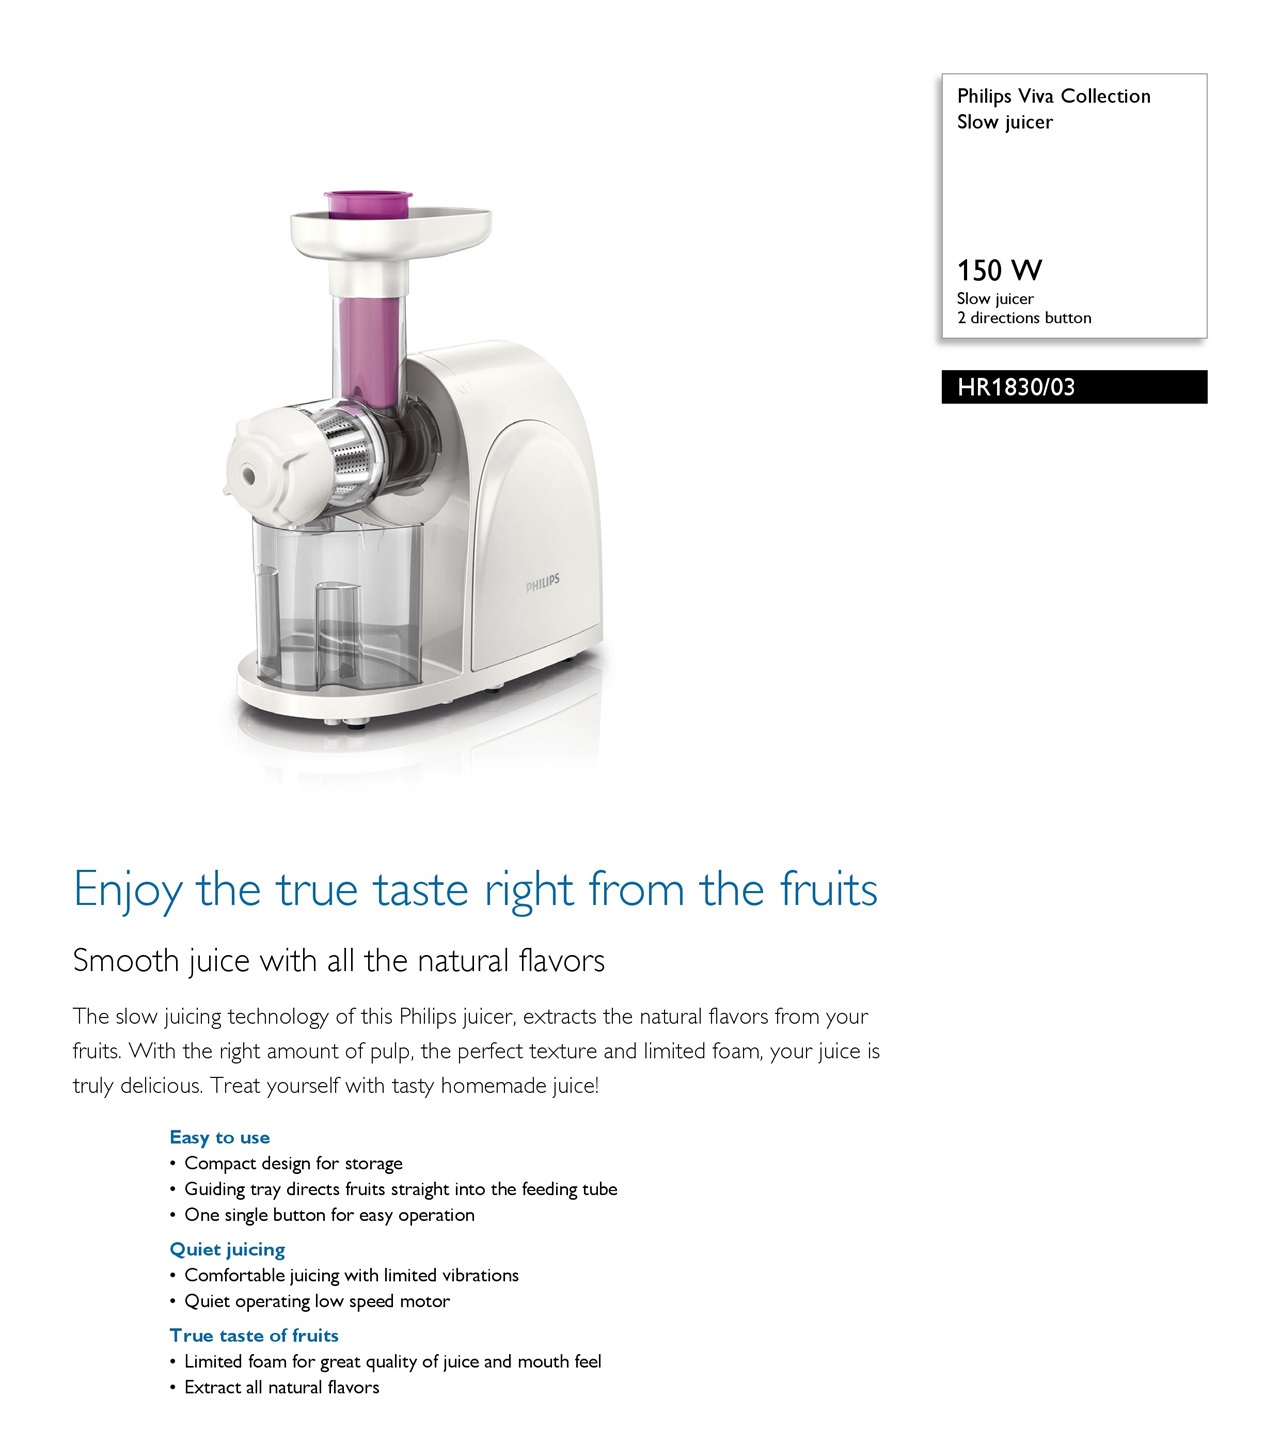 ET SOUND ENTERPRISE PTE LTD. Philips viva Collection Slow Juicer HR1830